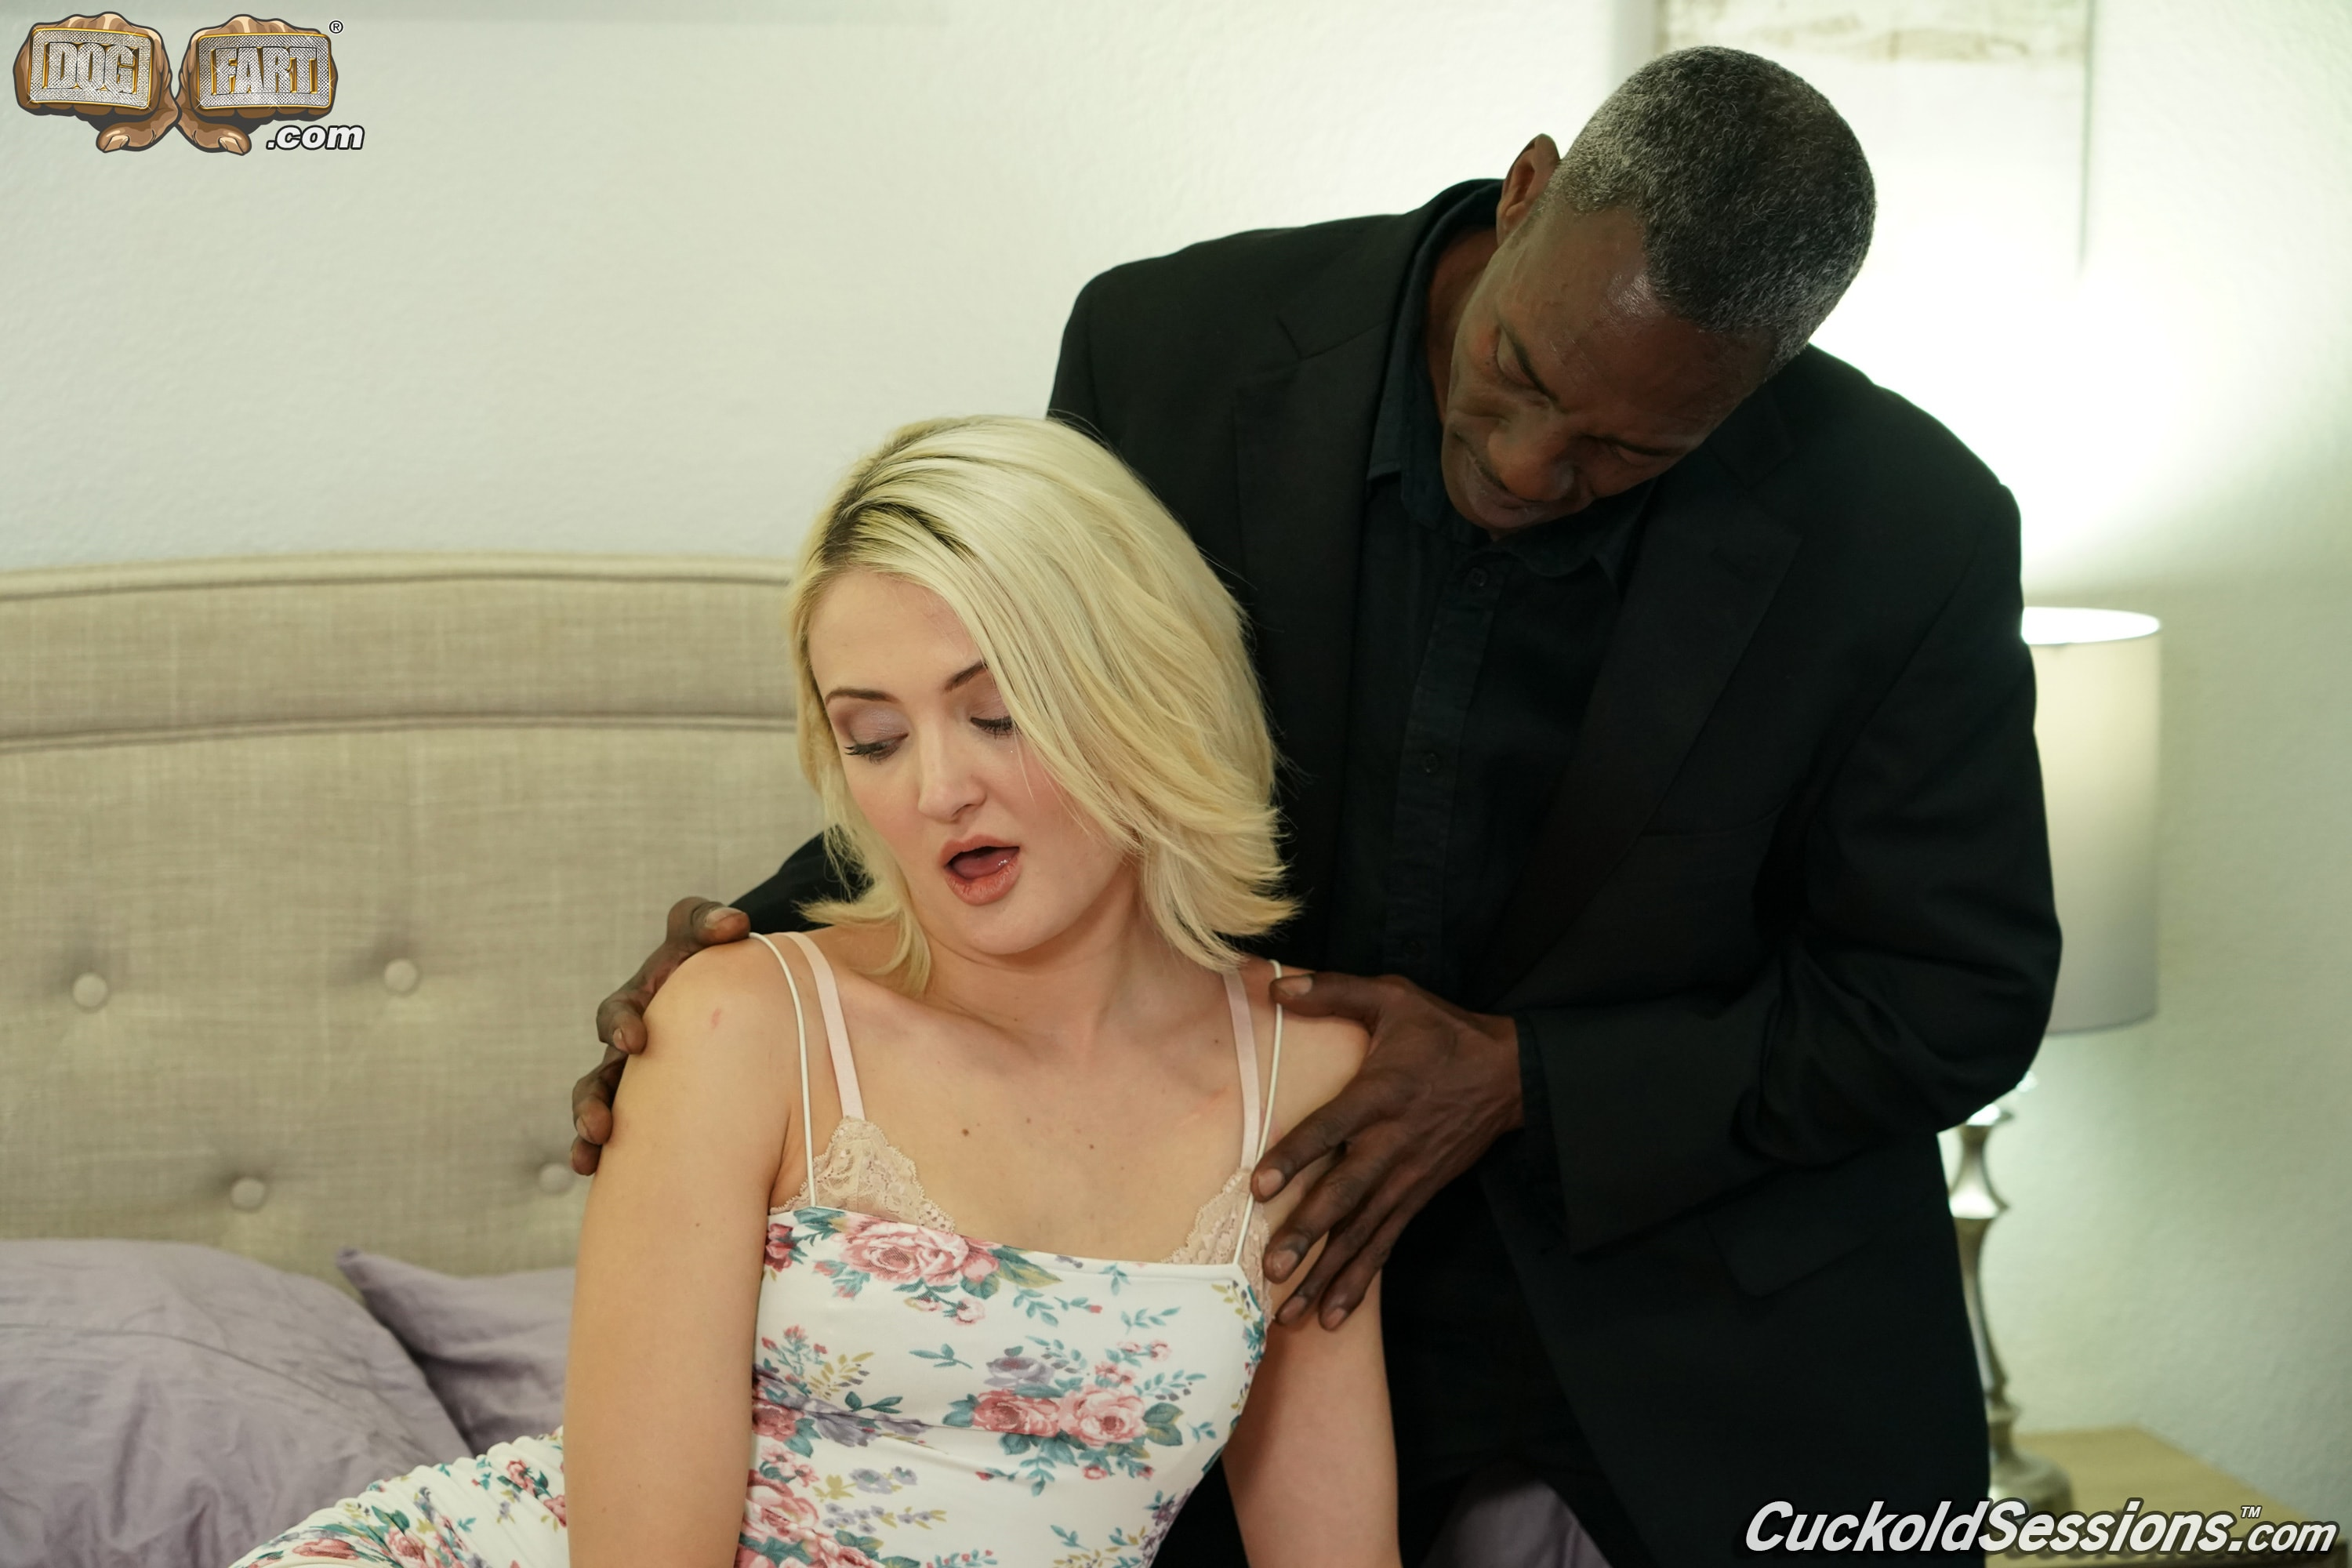 Dogfart '- Cuckold Sessions' starring Zoe Sparx (Photo 11)